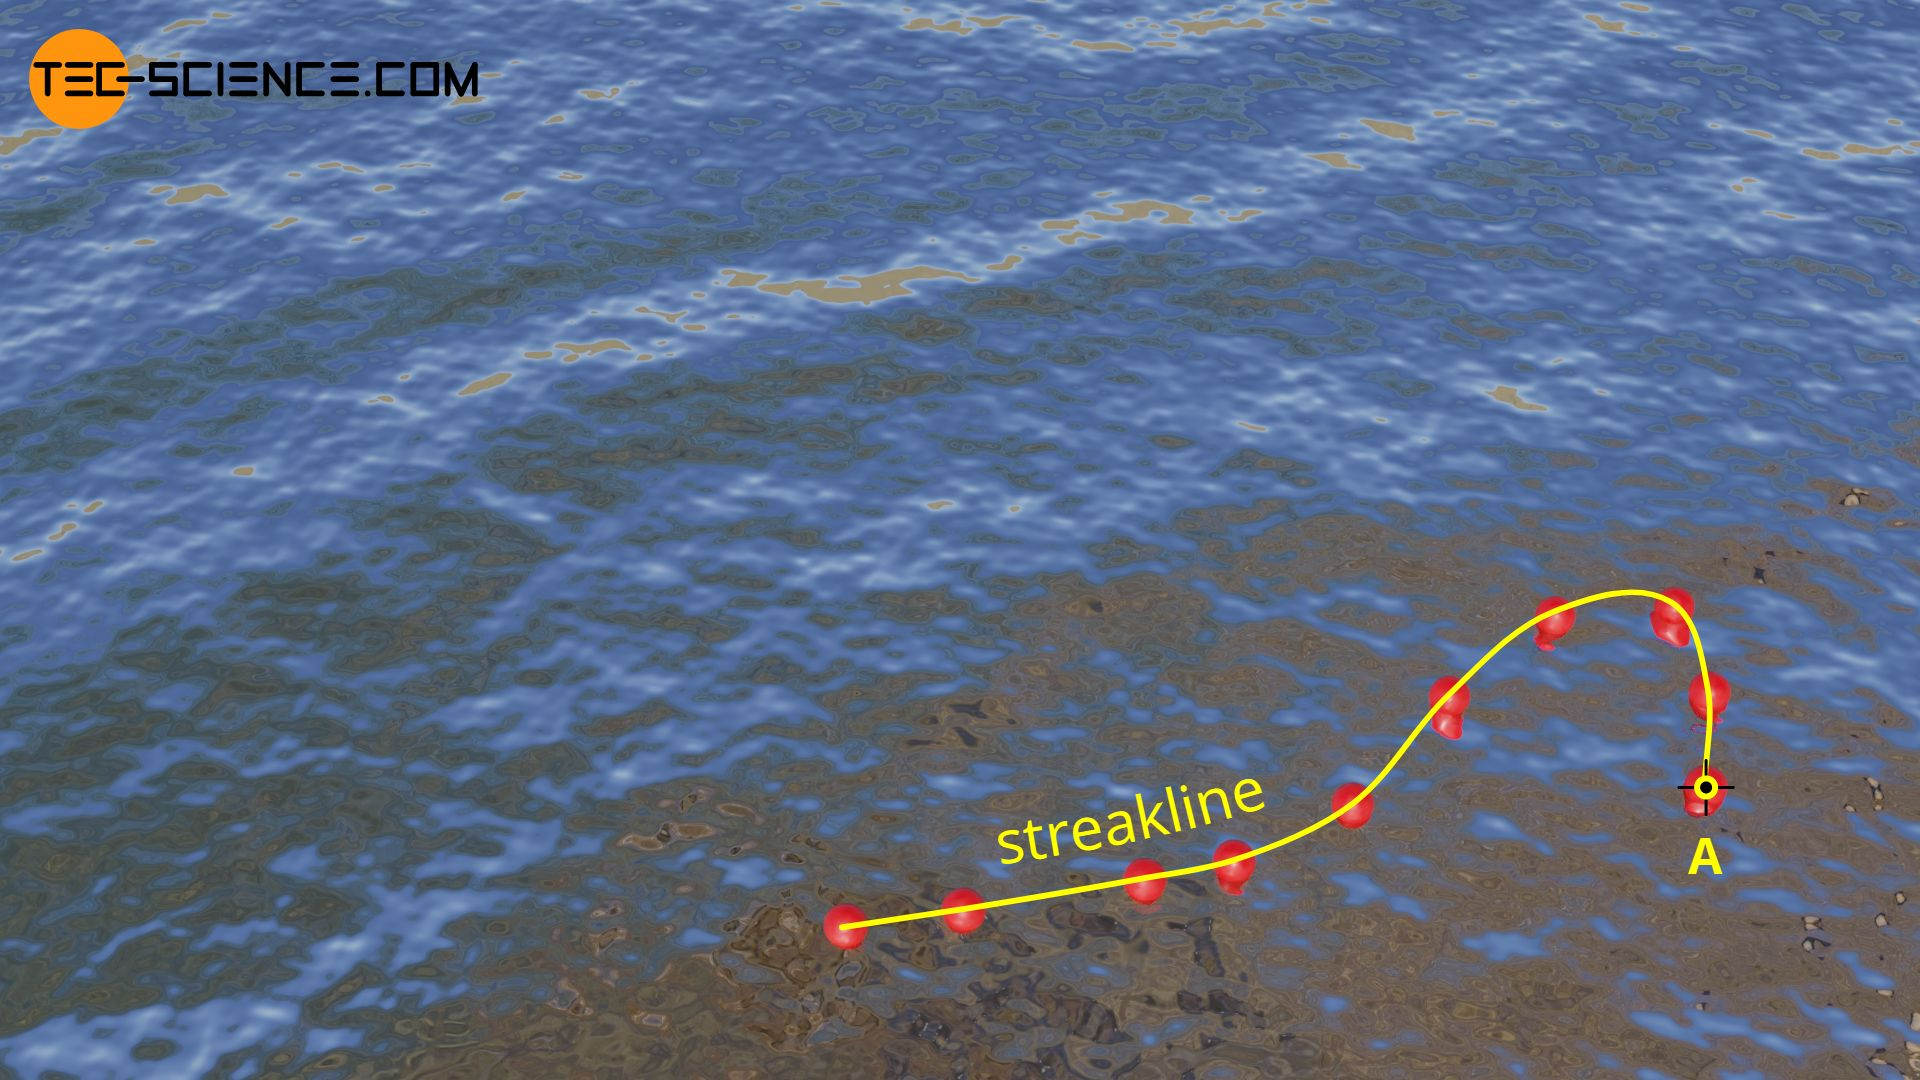 Streakline illustrated by floating balls in water